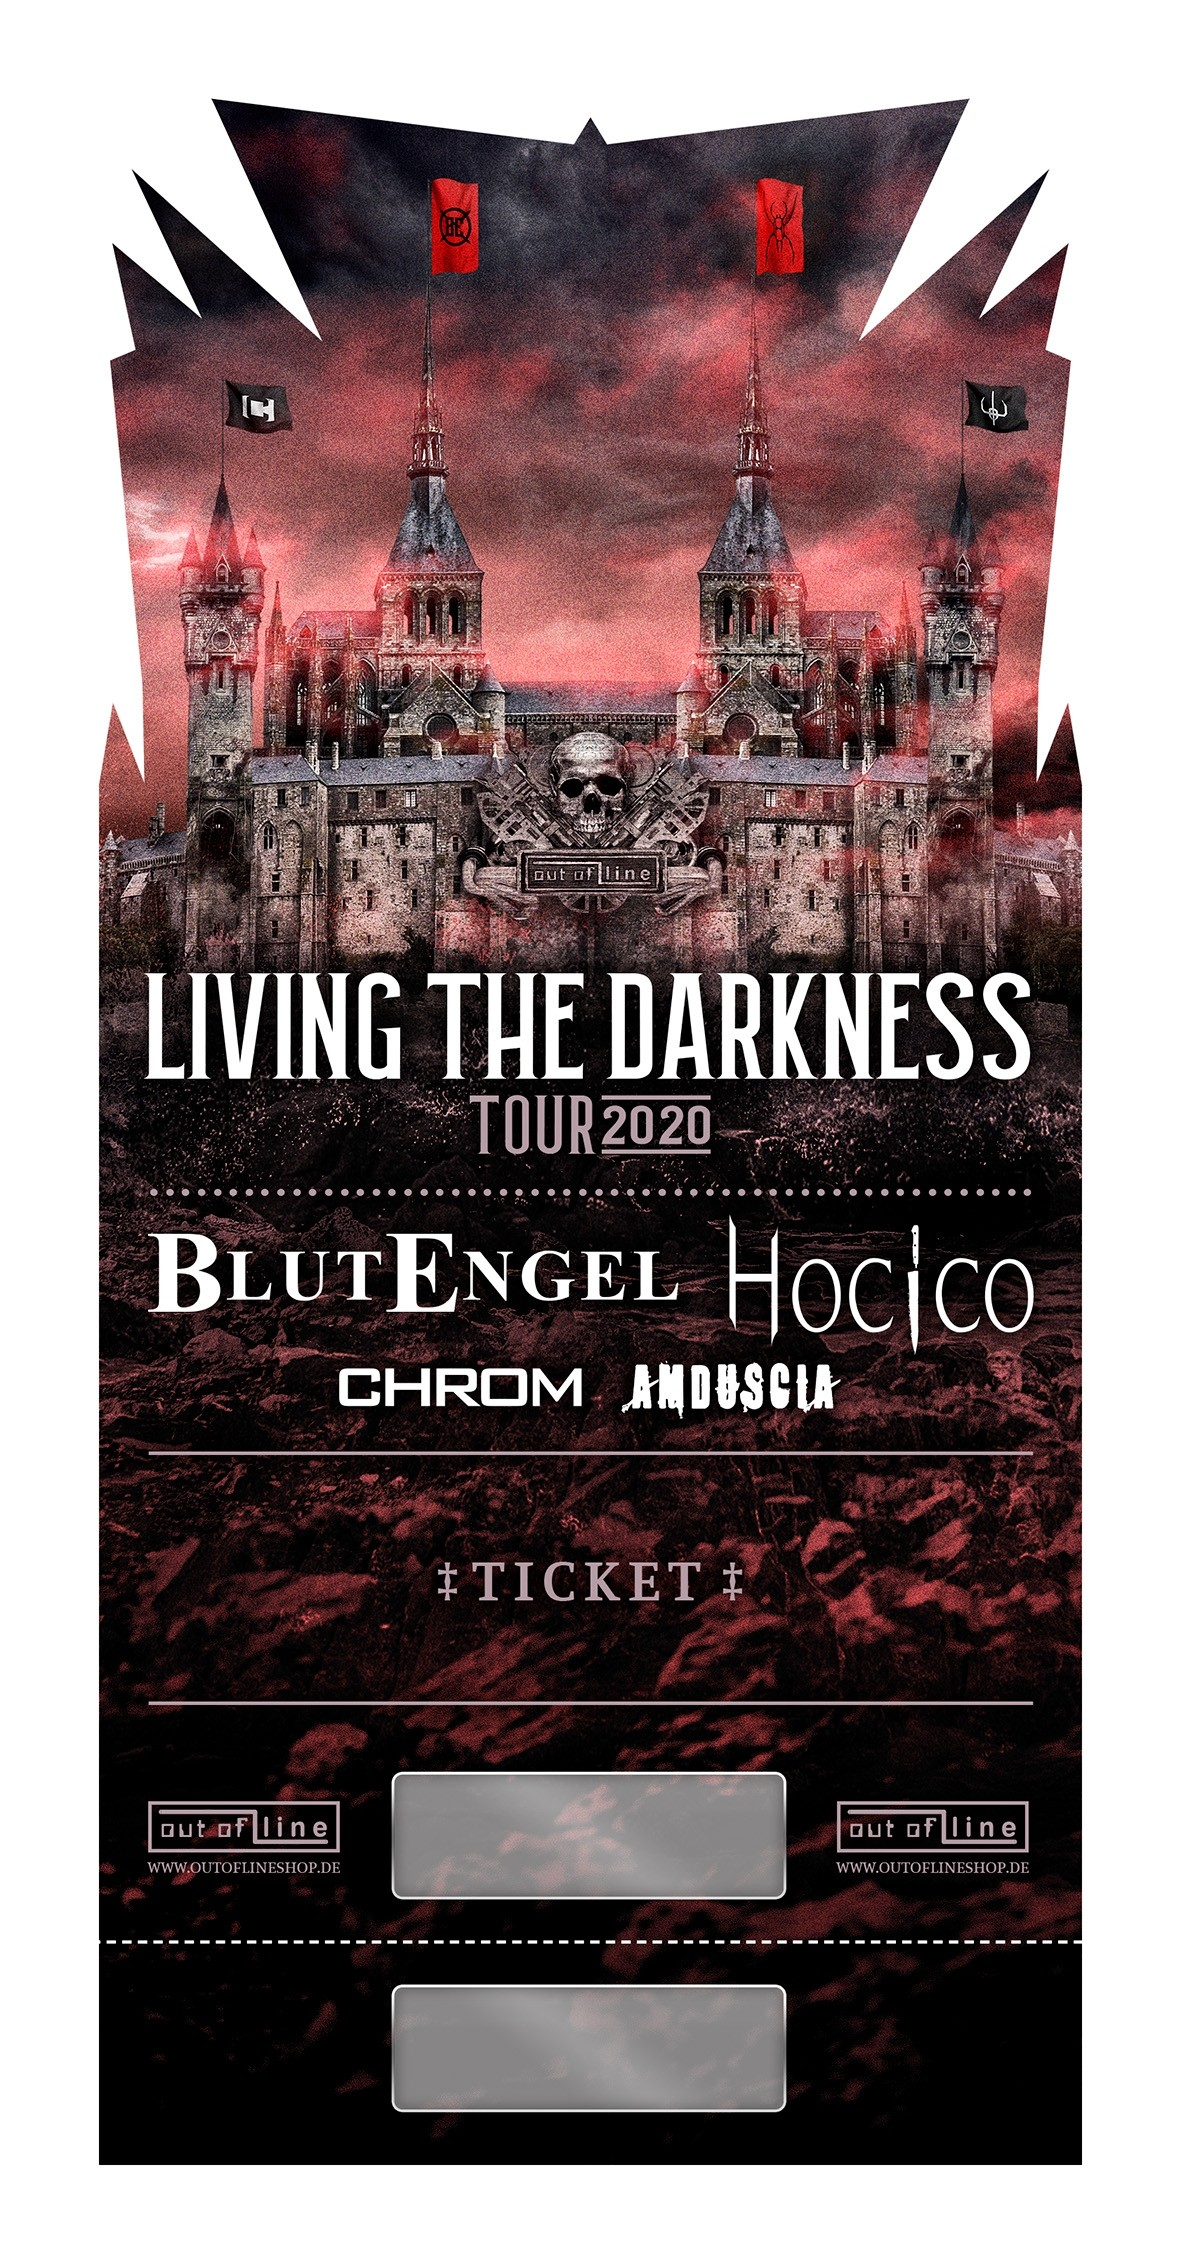 LIVING THE DARKNESS Tour - 09.04.2021 - LKA/Stuttgart - Ticket